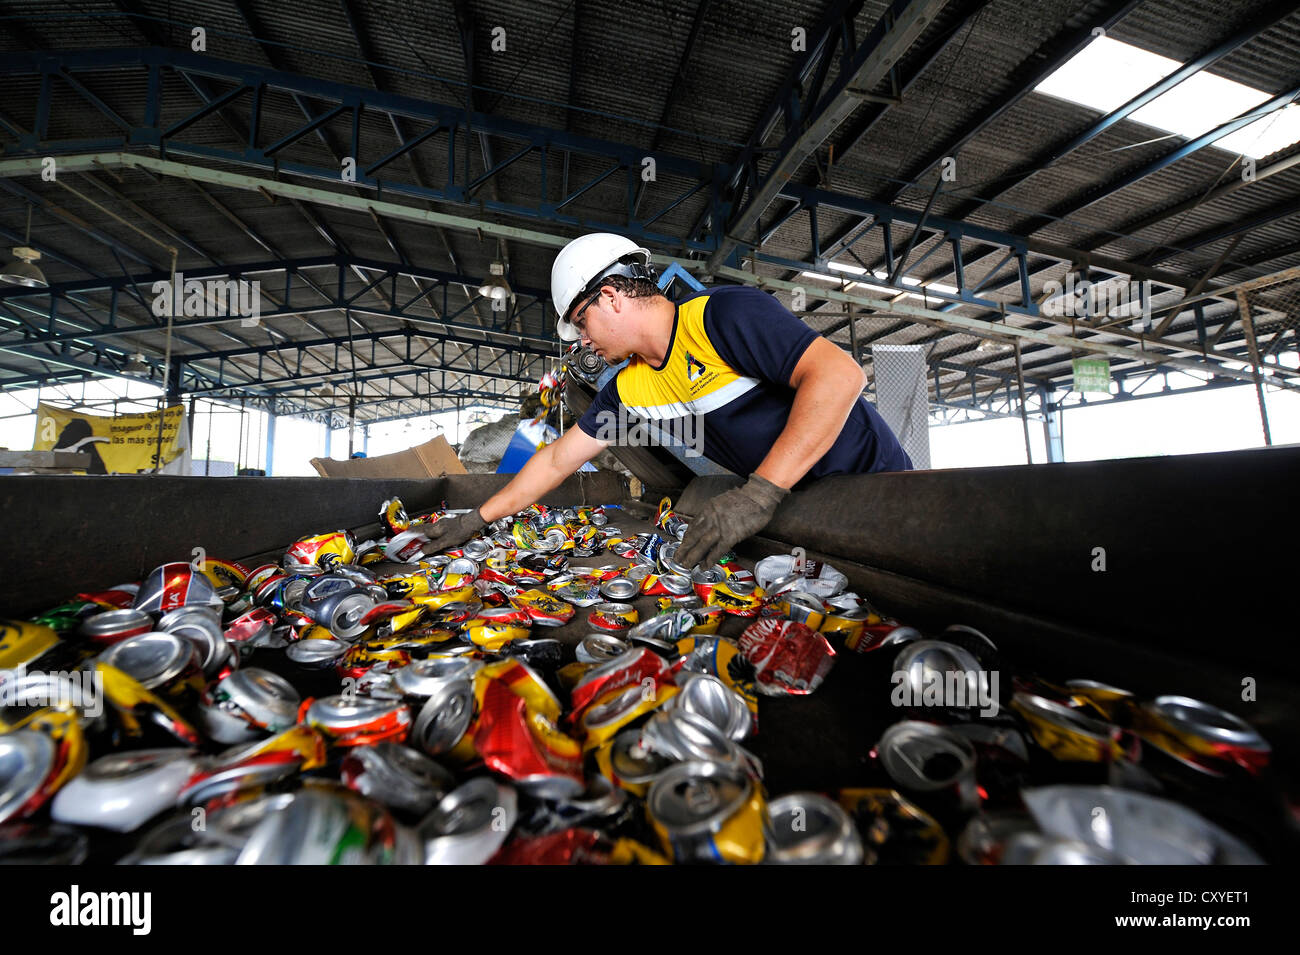 Sorting for cans made of tinplate, aluminium, on a conveyor belt in a recycling plant, San José, Costa Rica, - Stock Image